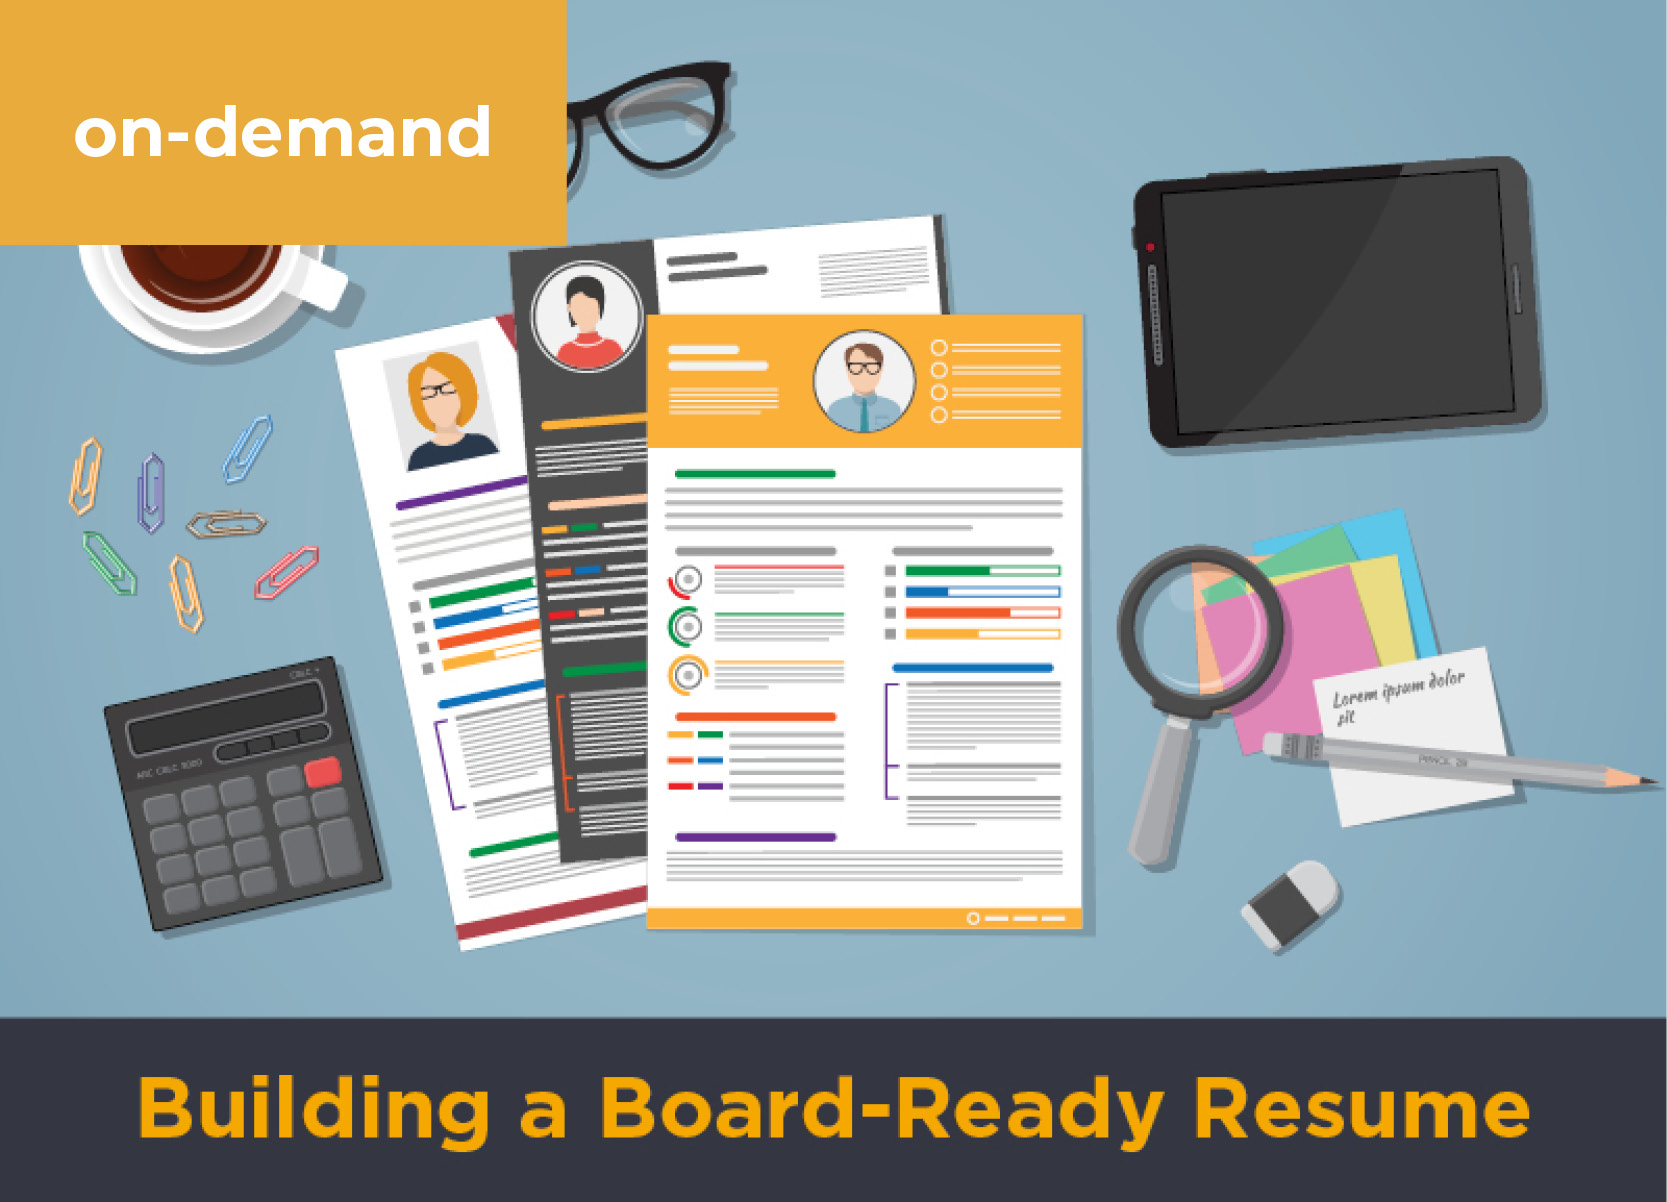 Building a Board-Ready Resume